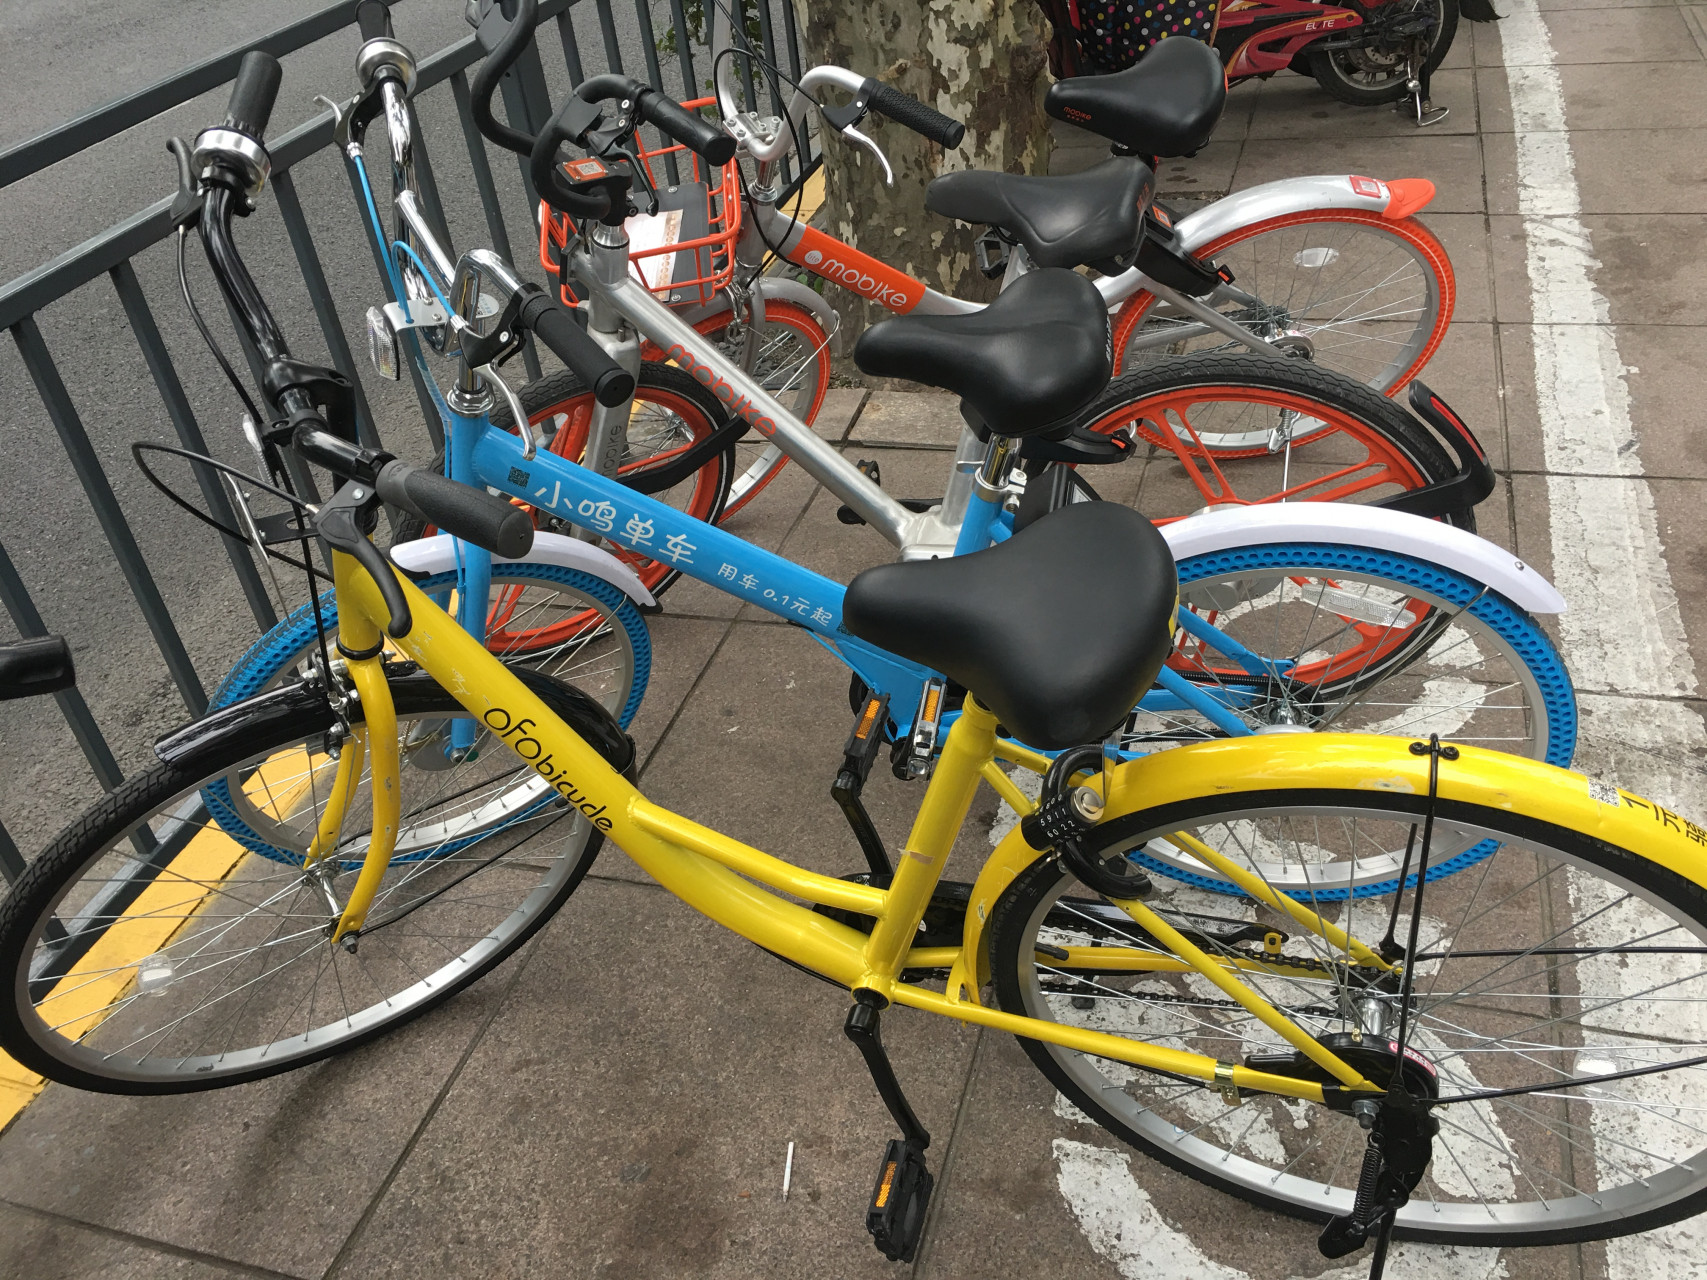 Shanghai Bike Sharing Battle Ofo Vs Mobike Vs Xiaoming